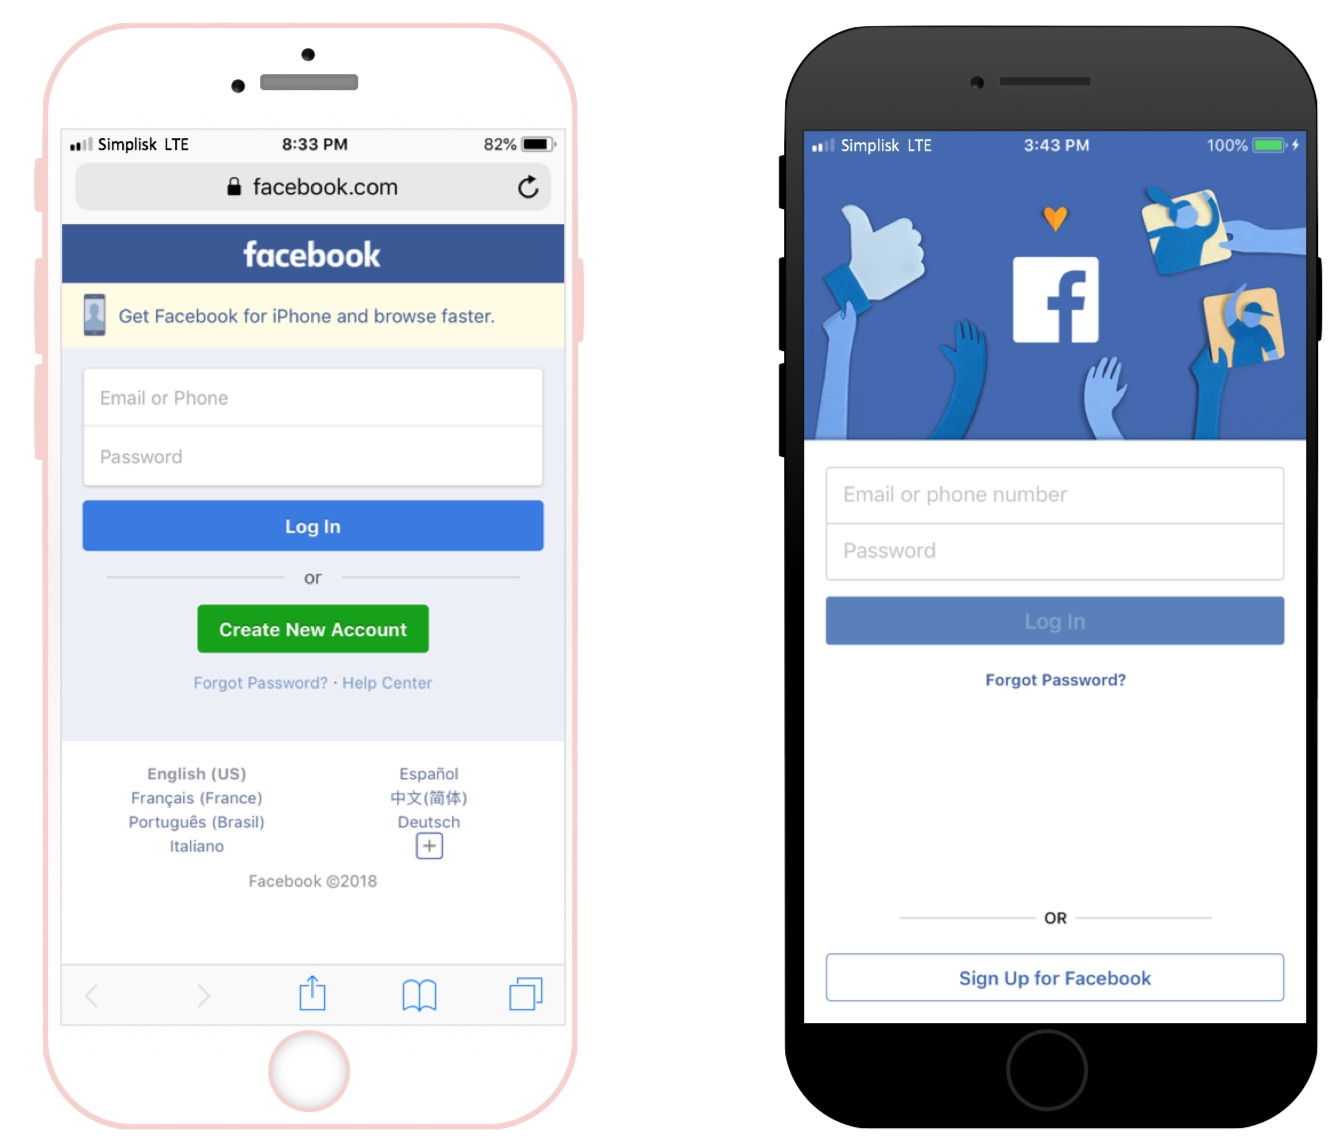 Facebook Native App and Mobile Web App Example